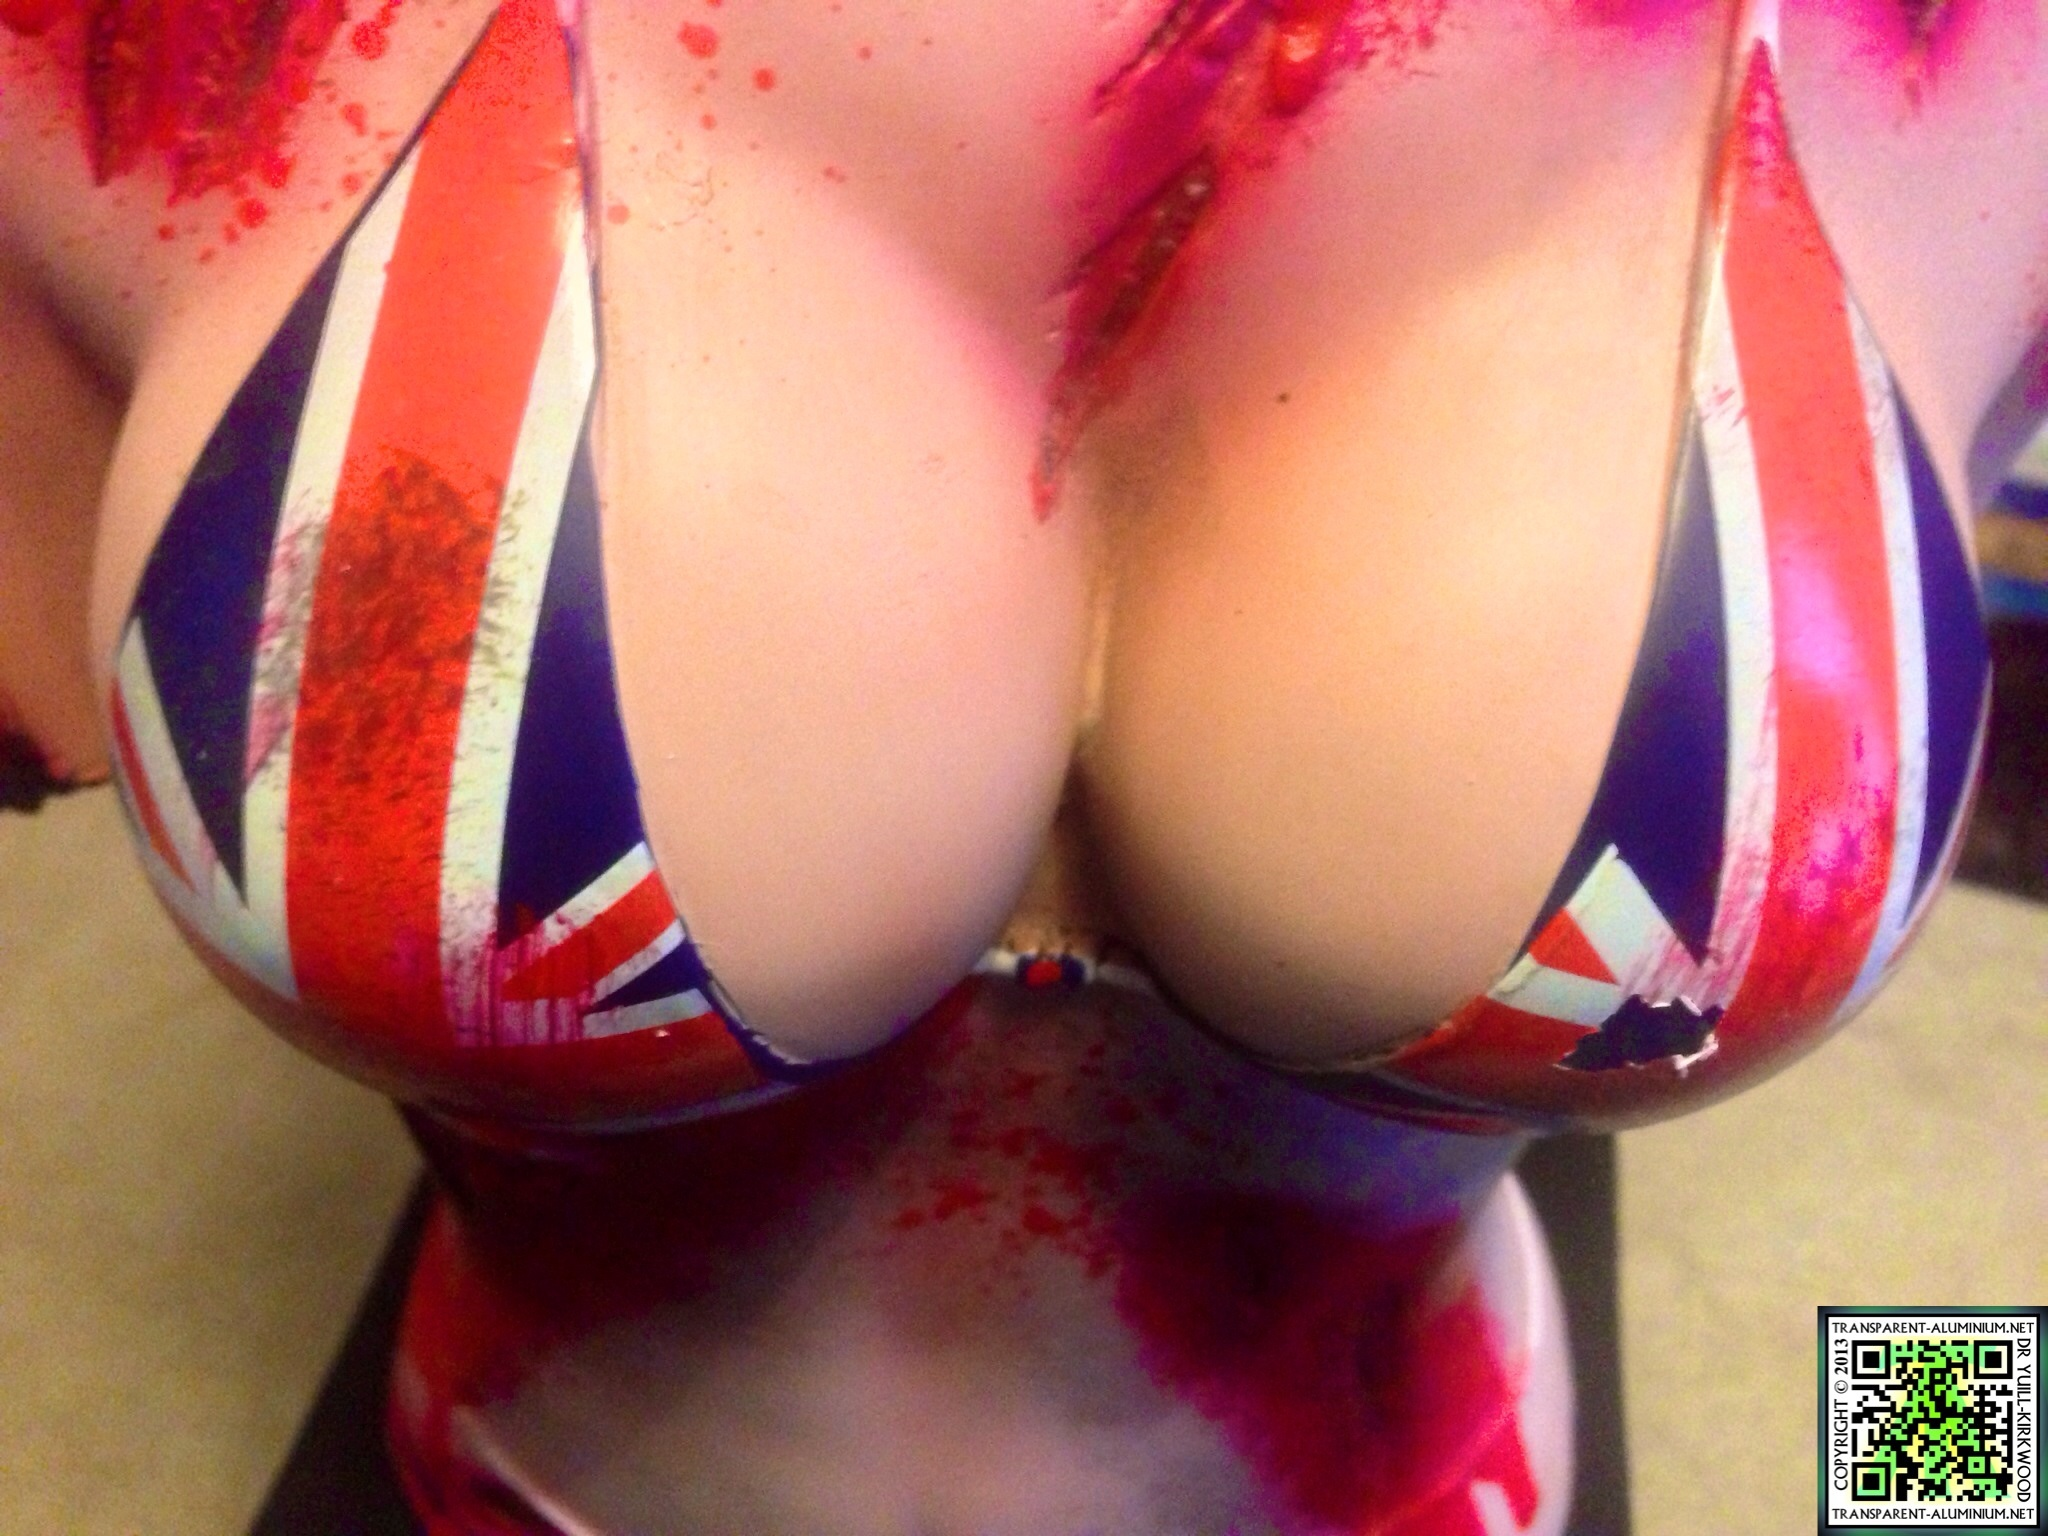 Dead Island Riptide Zombie Bait edition BOOBS